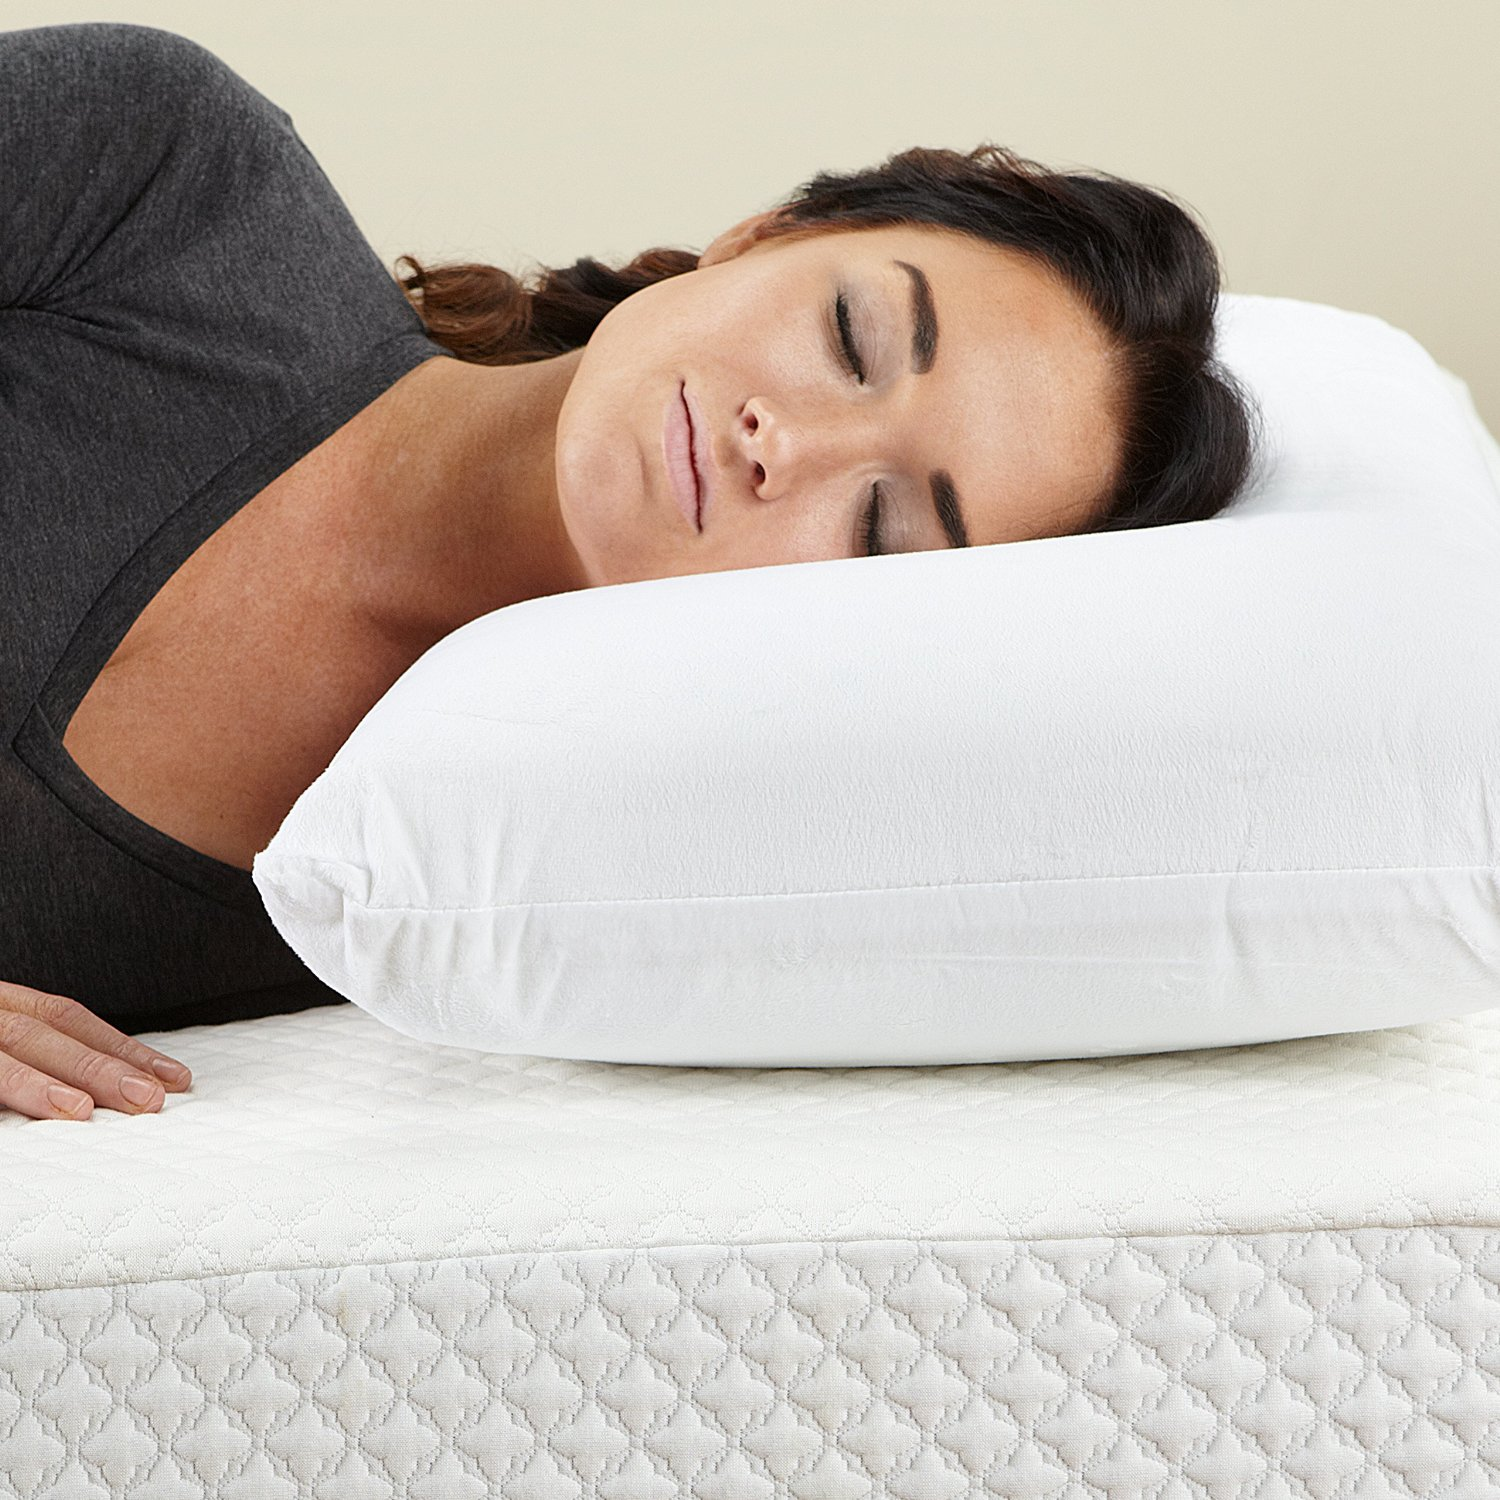 The 10 Best Pillows For Side Sleepers With Neck Pain